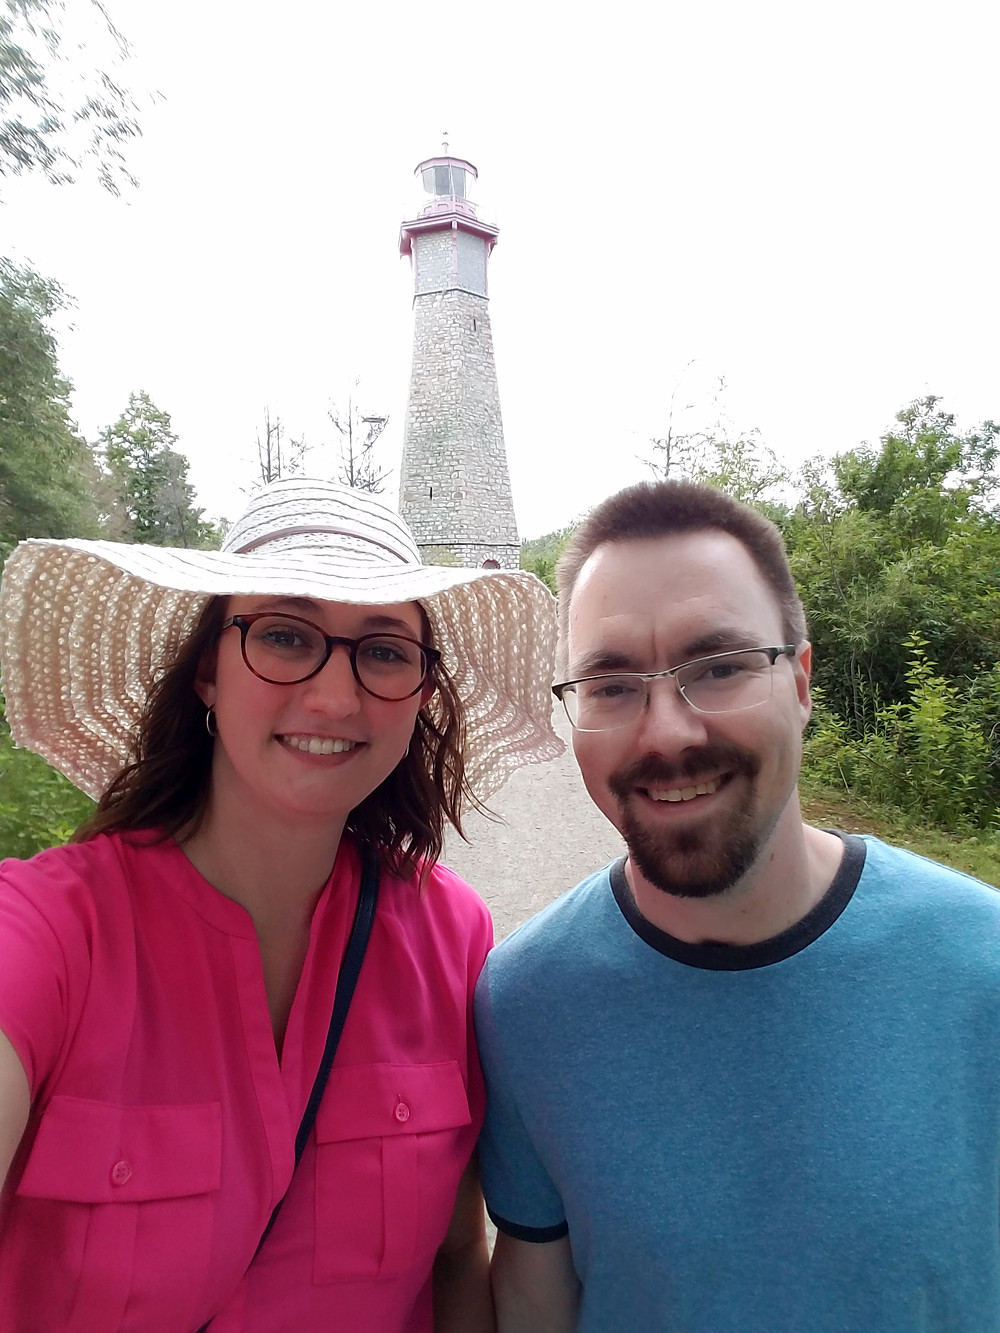 Selfie with the lighthouse on Toronto Island